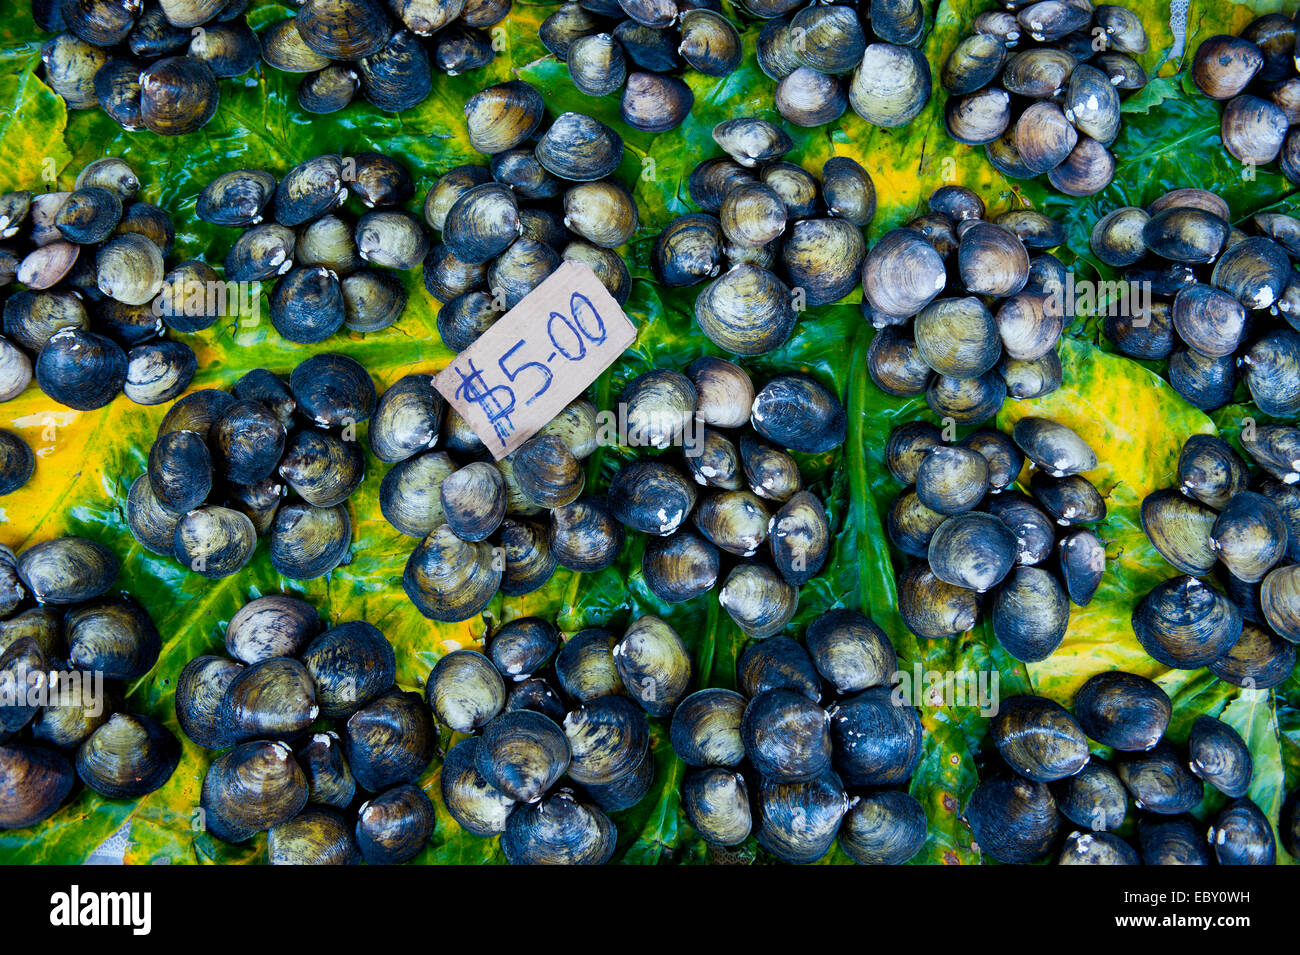 Mussels for sale at the market hall, Honiara, Solomon Islands - Stock Image